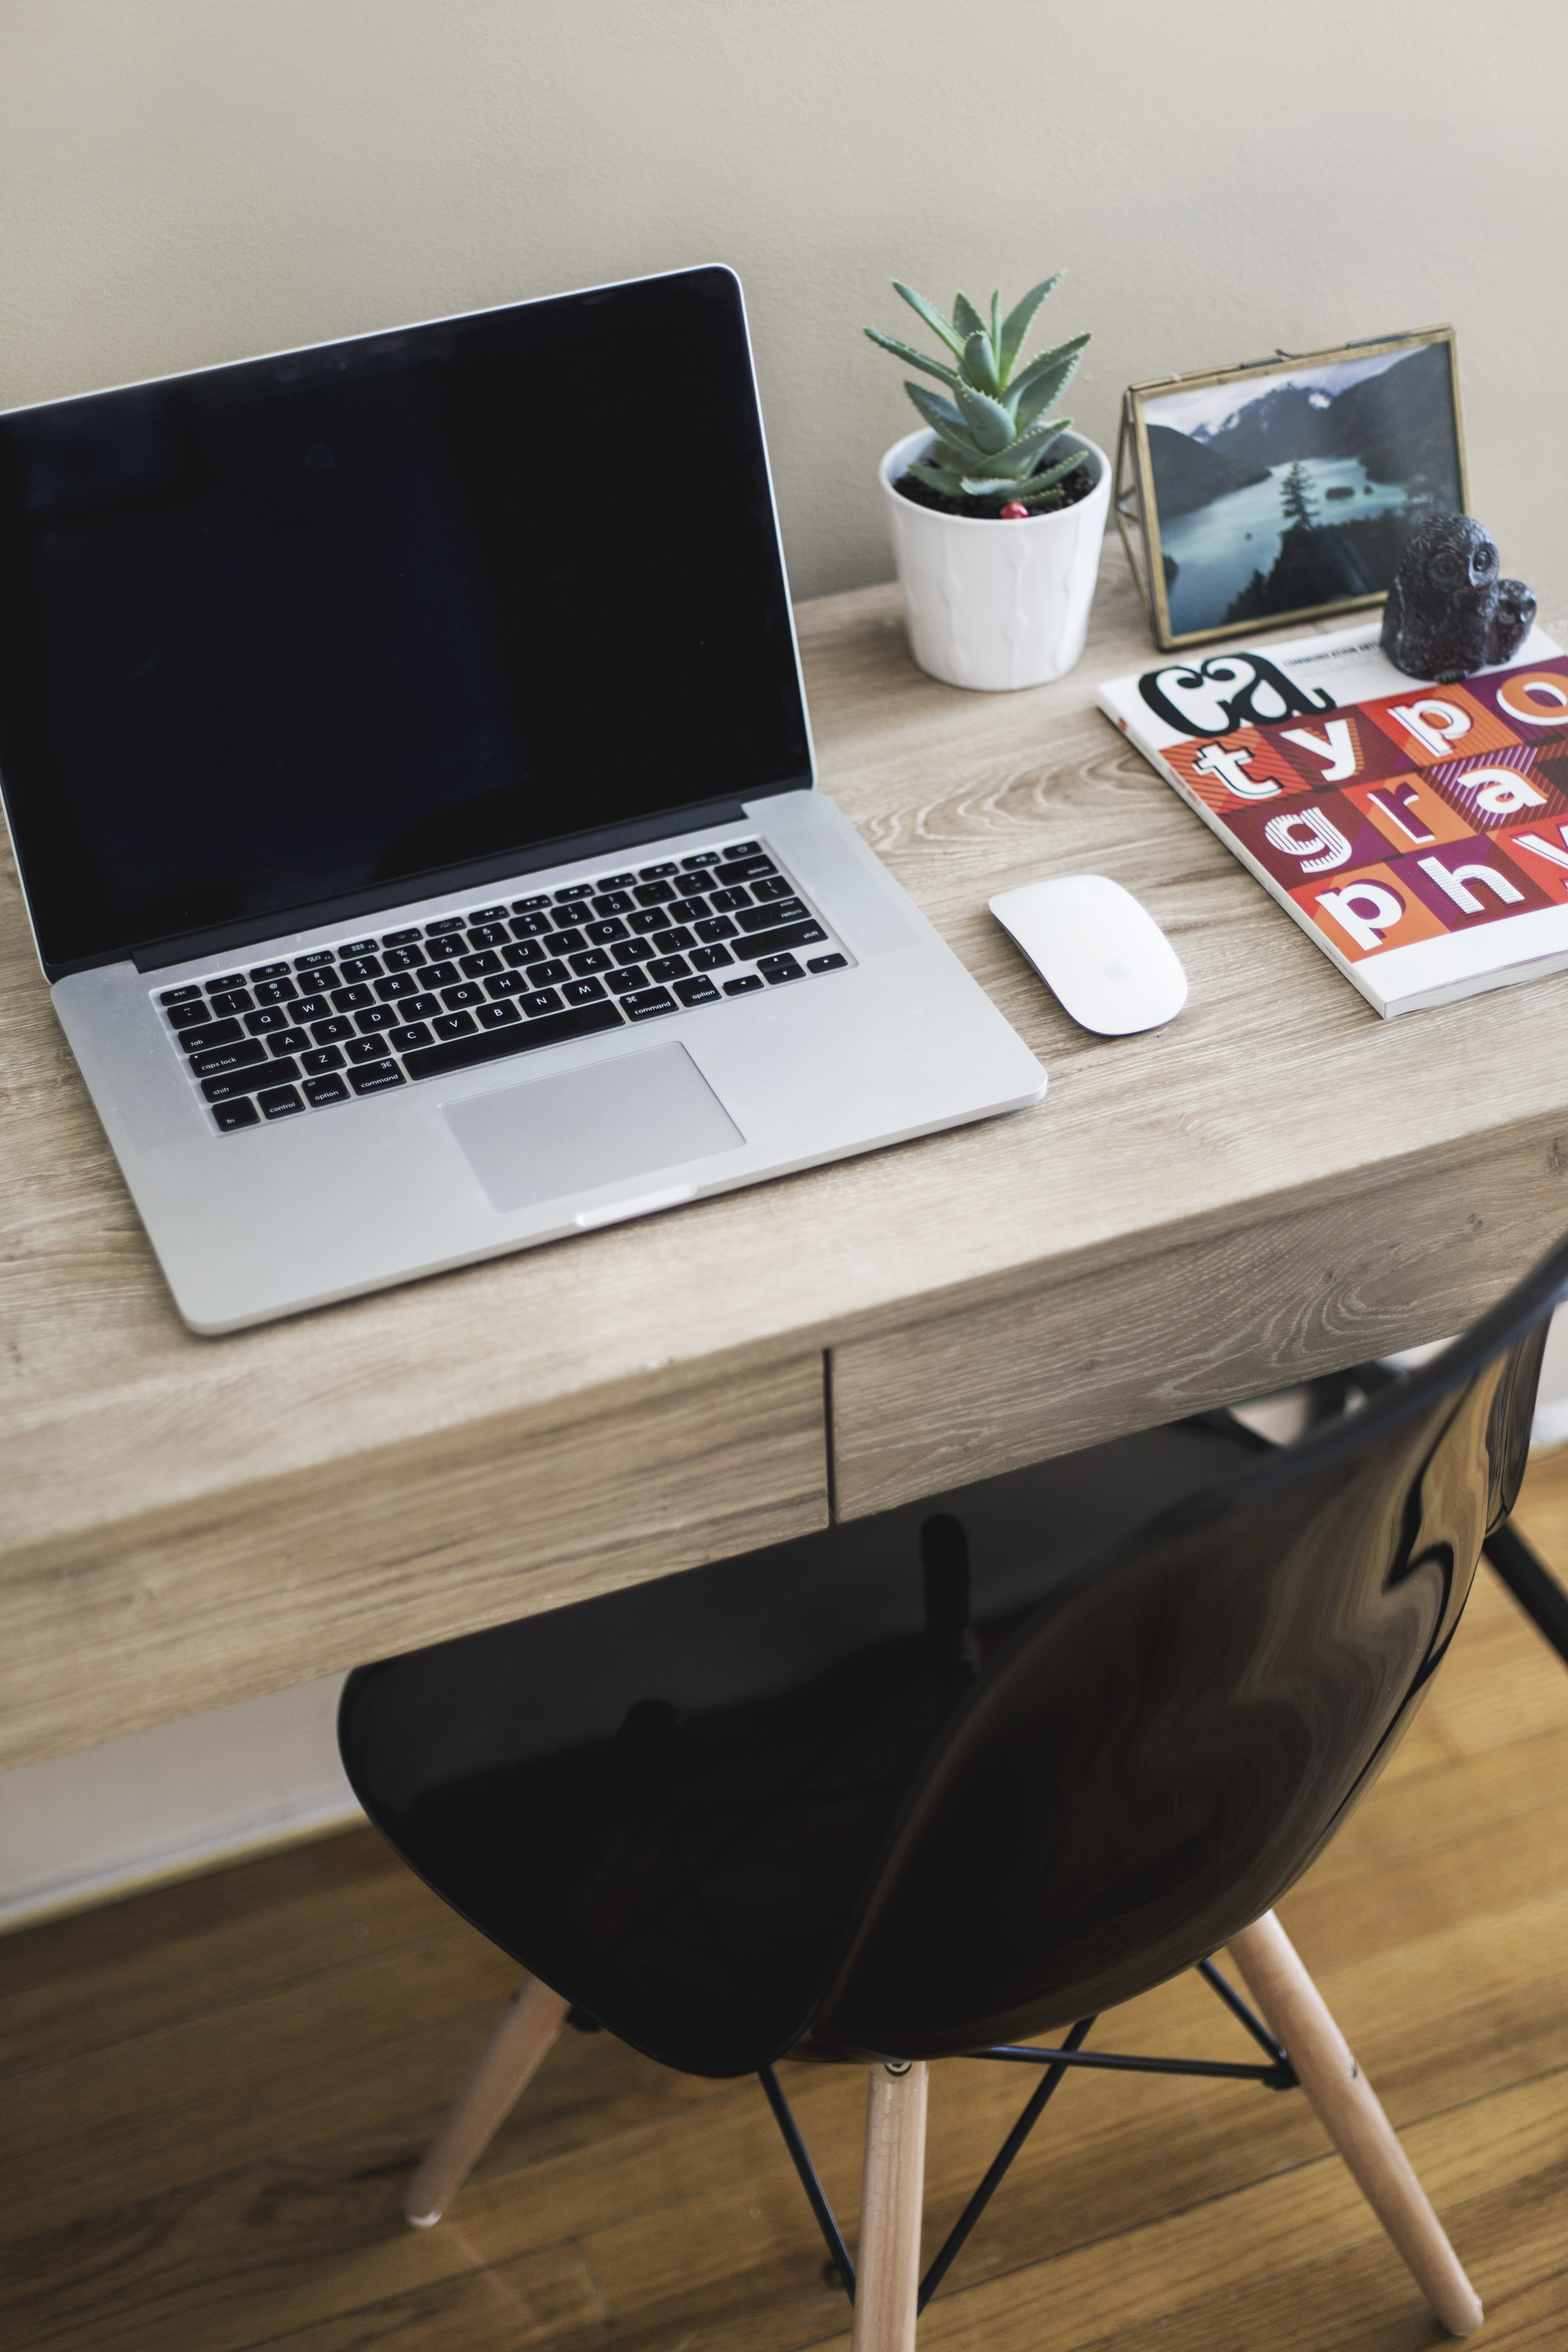 MacBook Pro on table with Magic Mouse